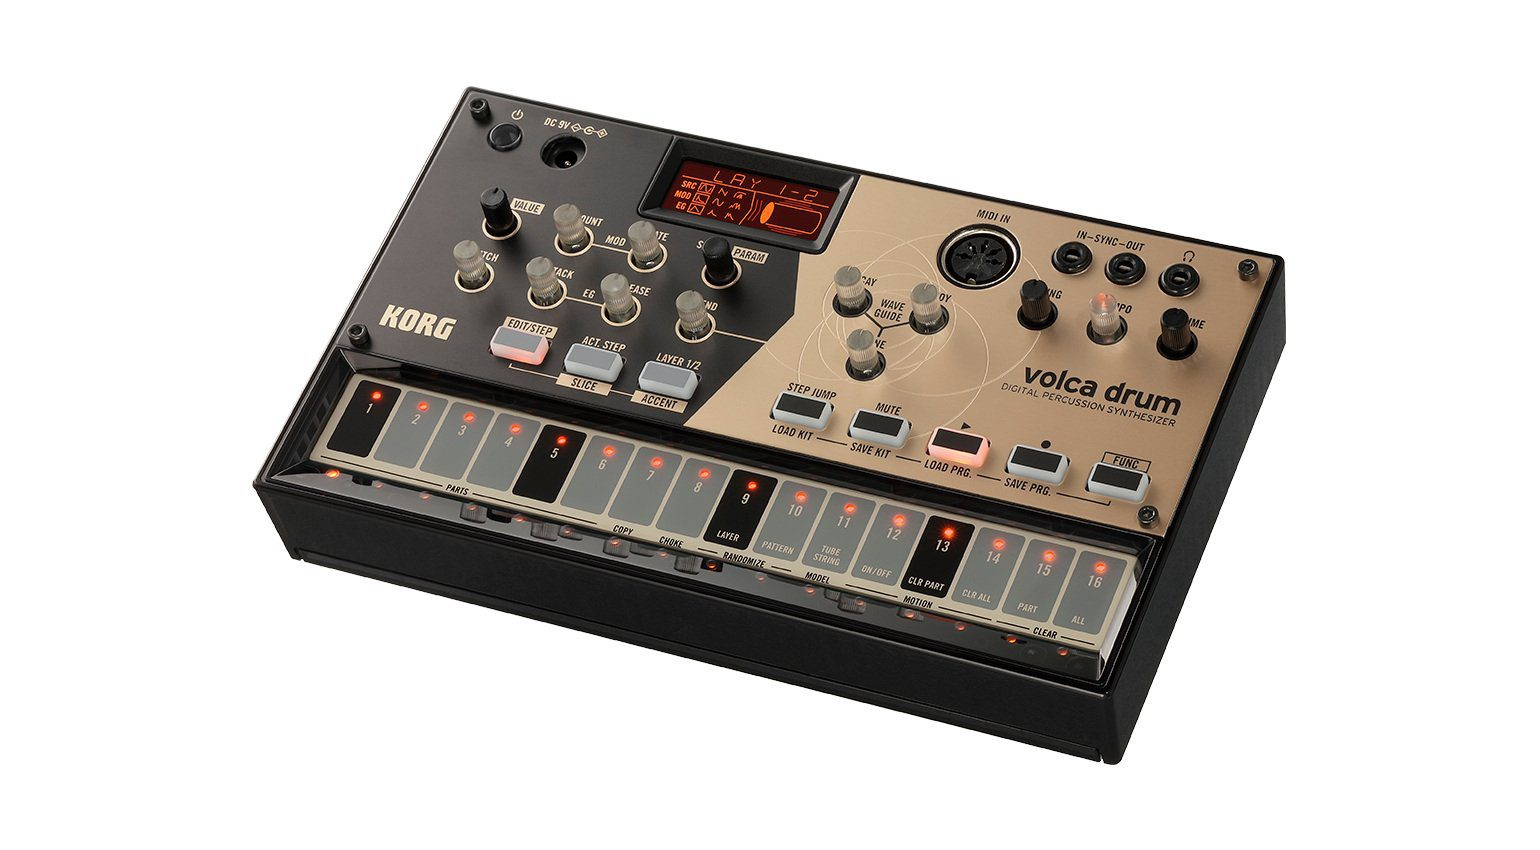 Korg Volca Drum Digital Percussion Synthesizer